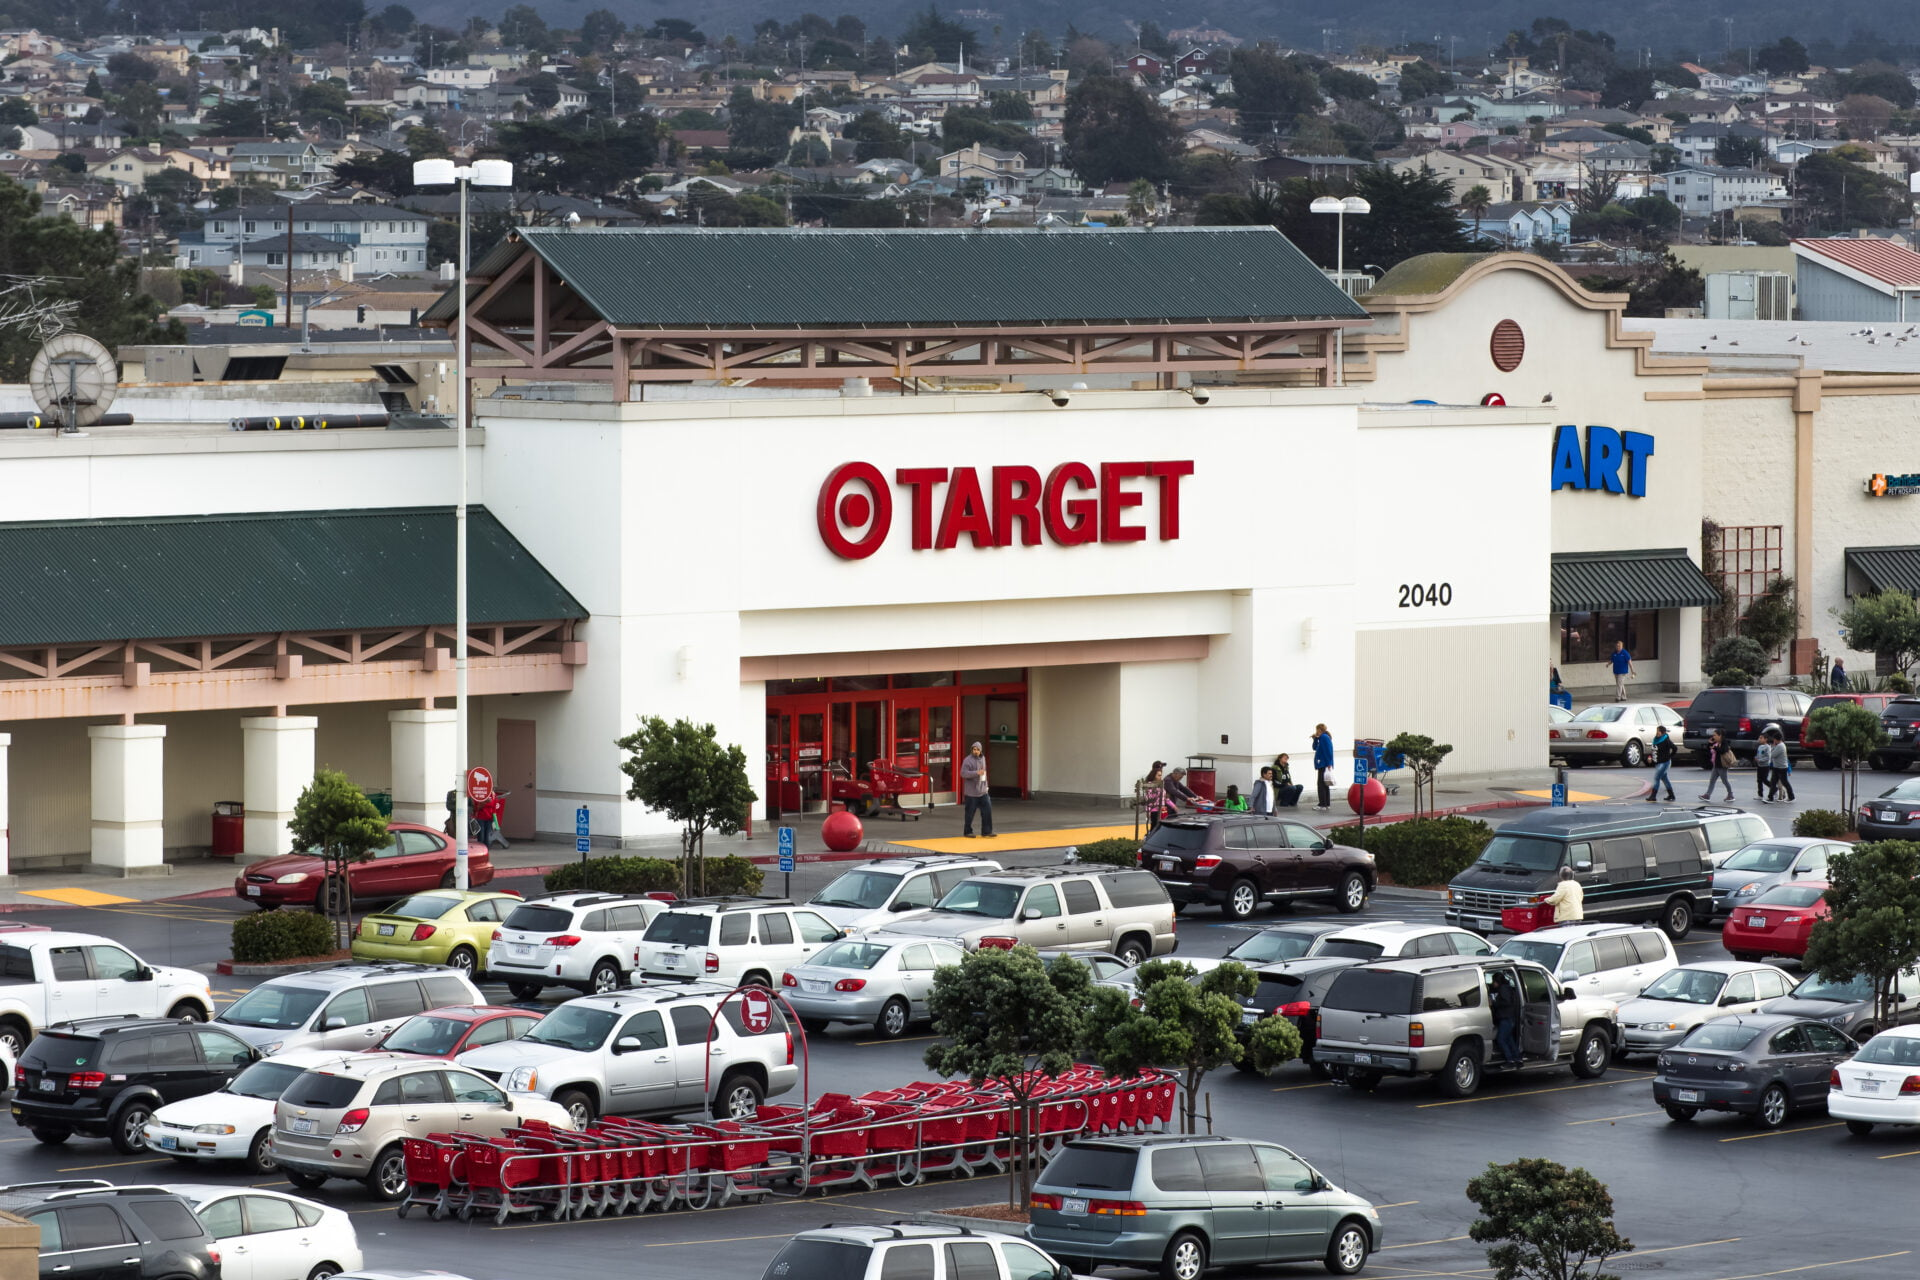 Target super store with large parking lot